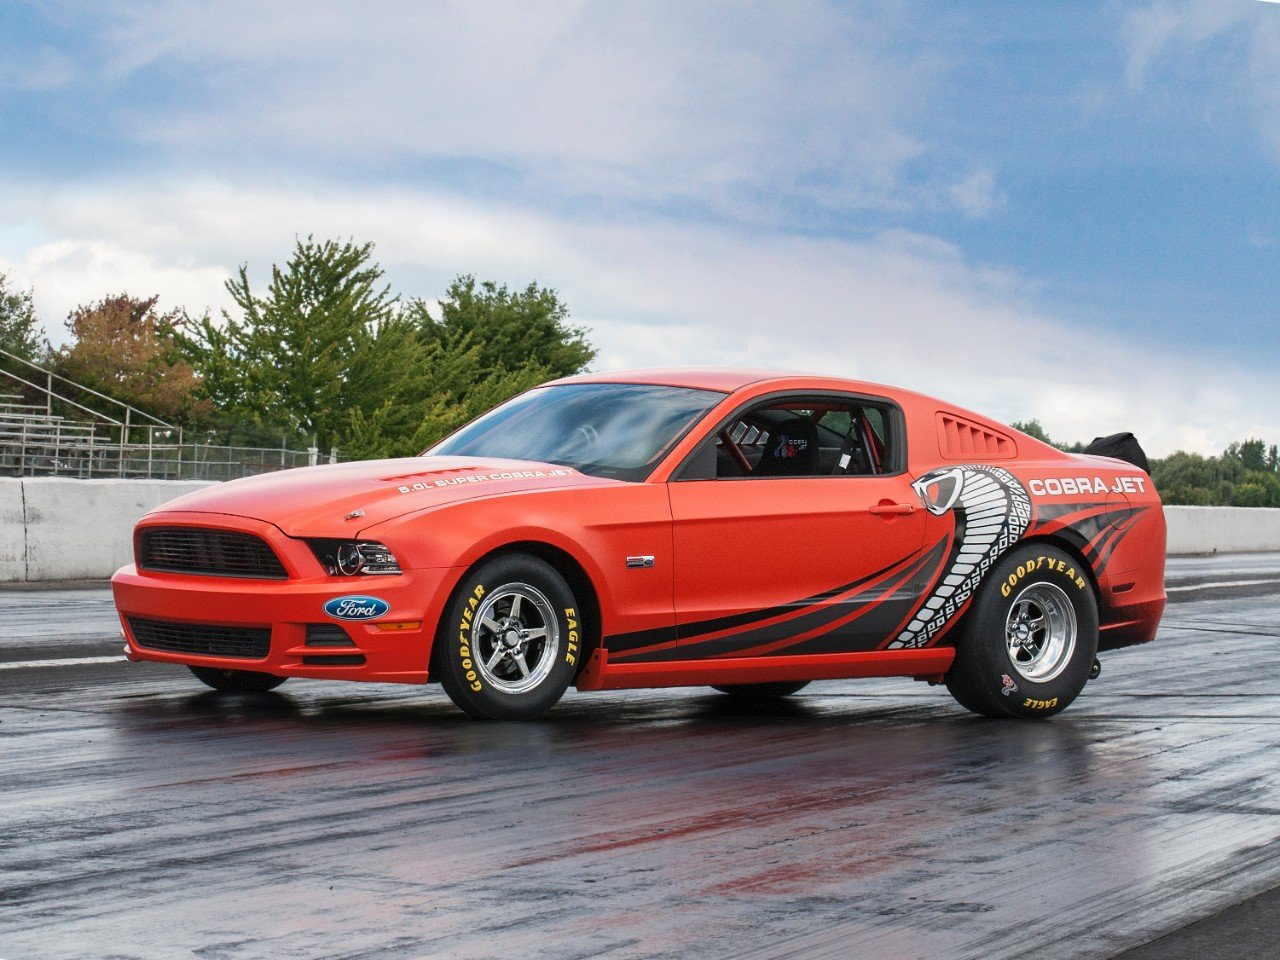 Calling all Cobra Jet Owners